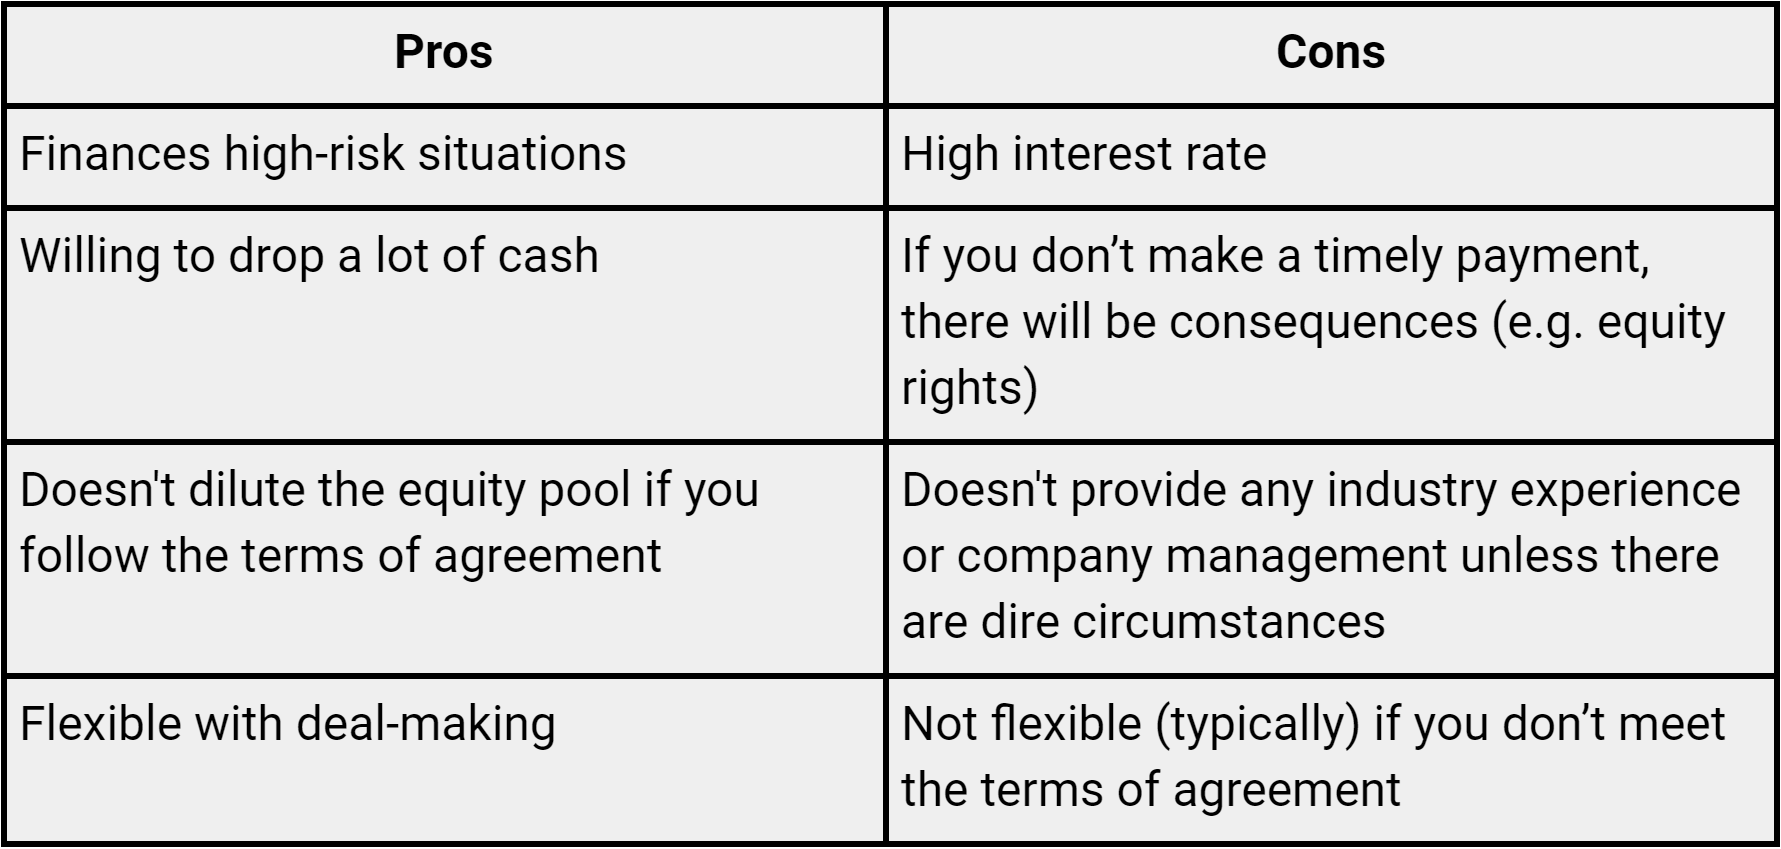 Pros and Cons.PNG